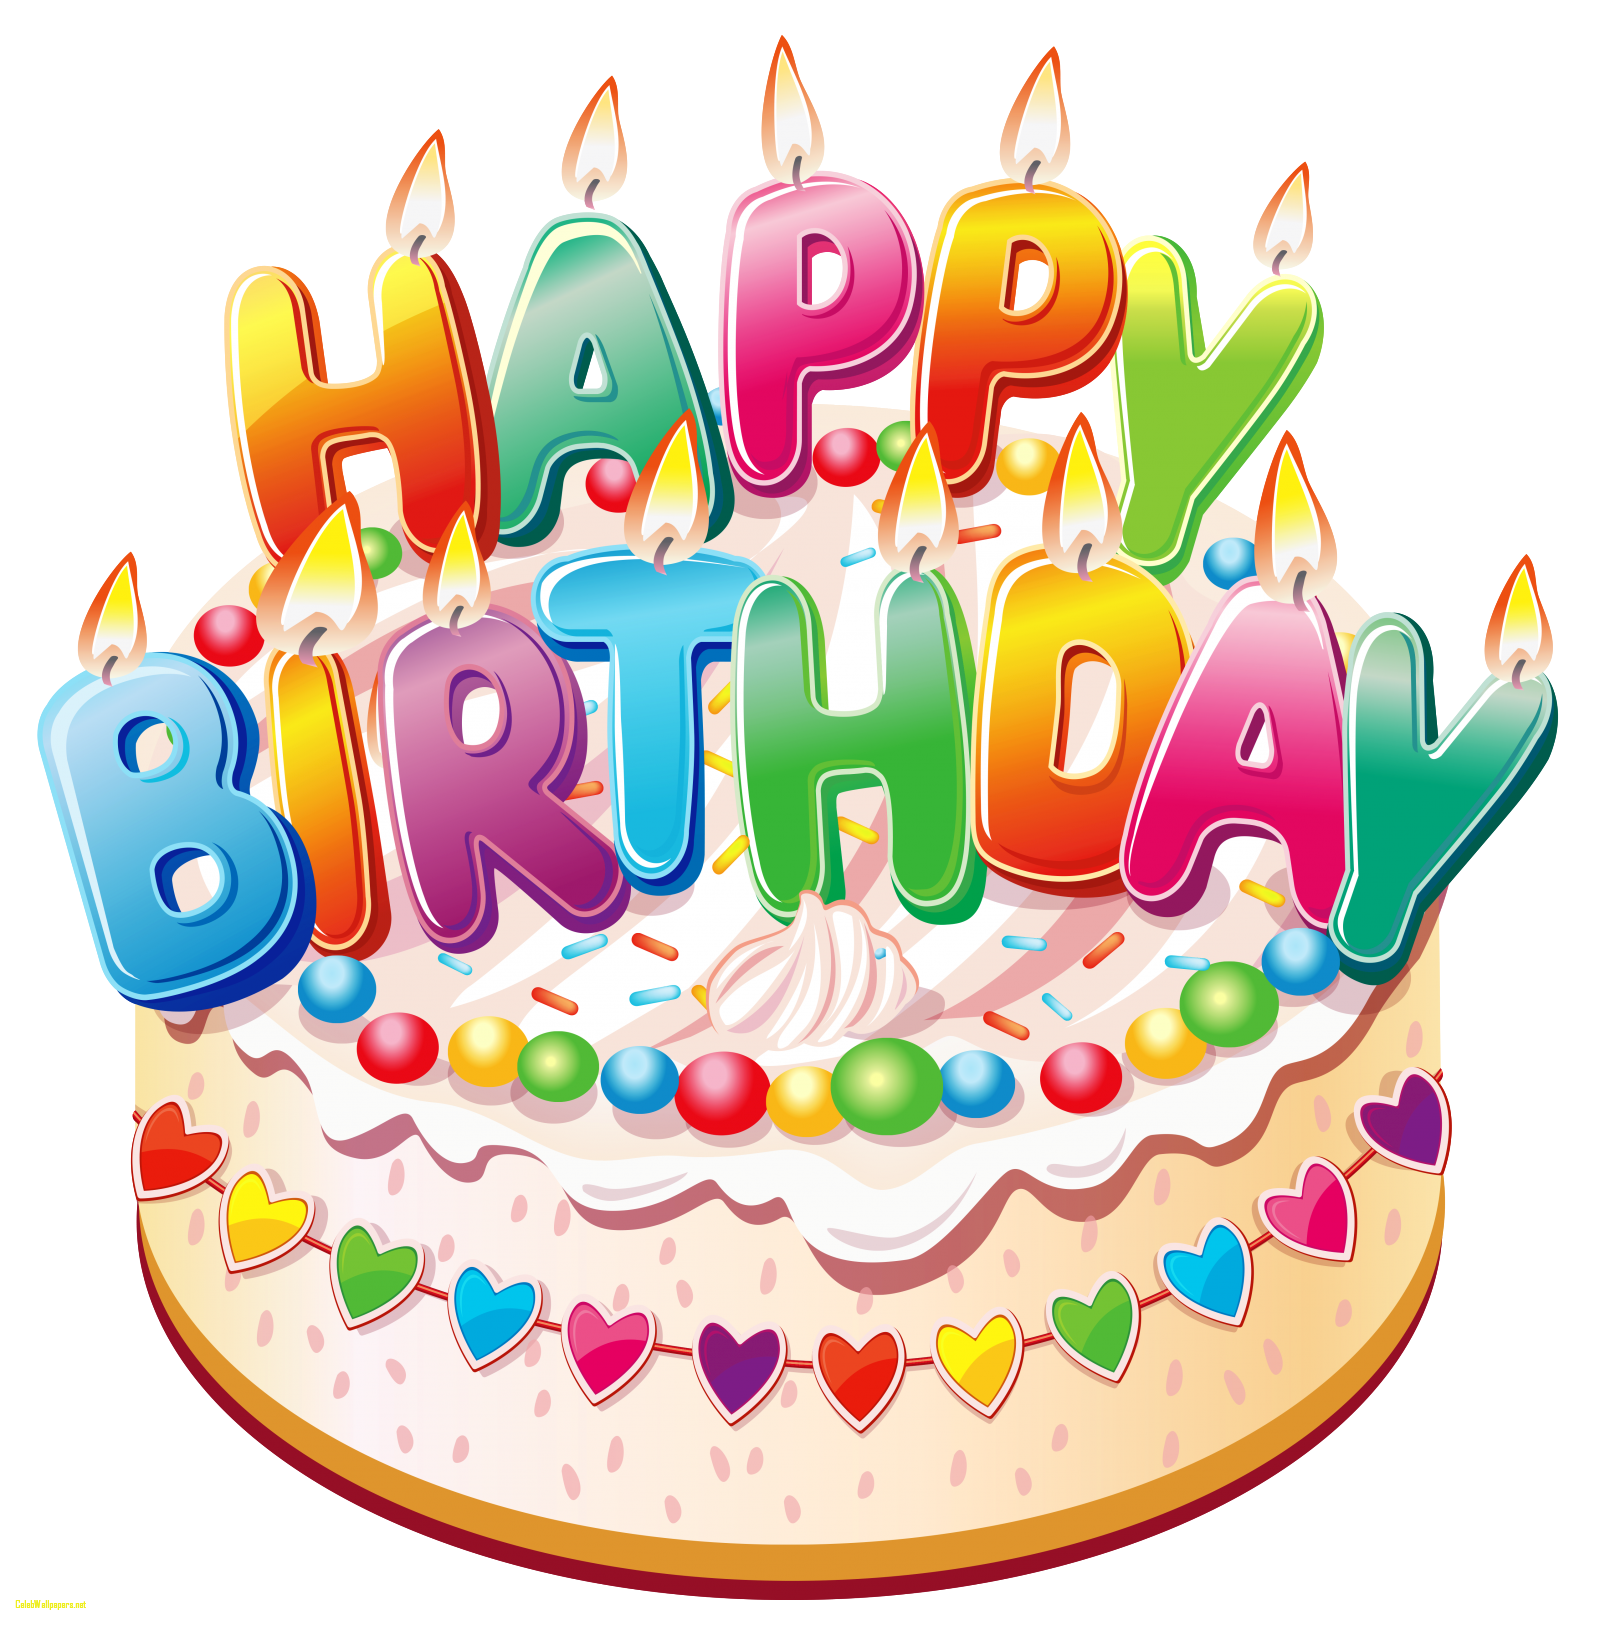 Birth day images cake. Free clipart happy birthday